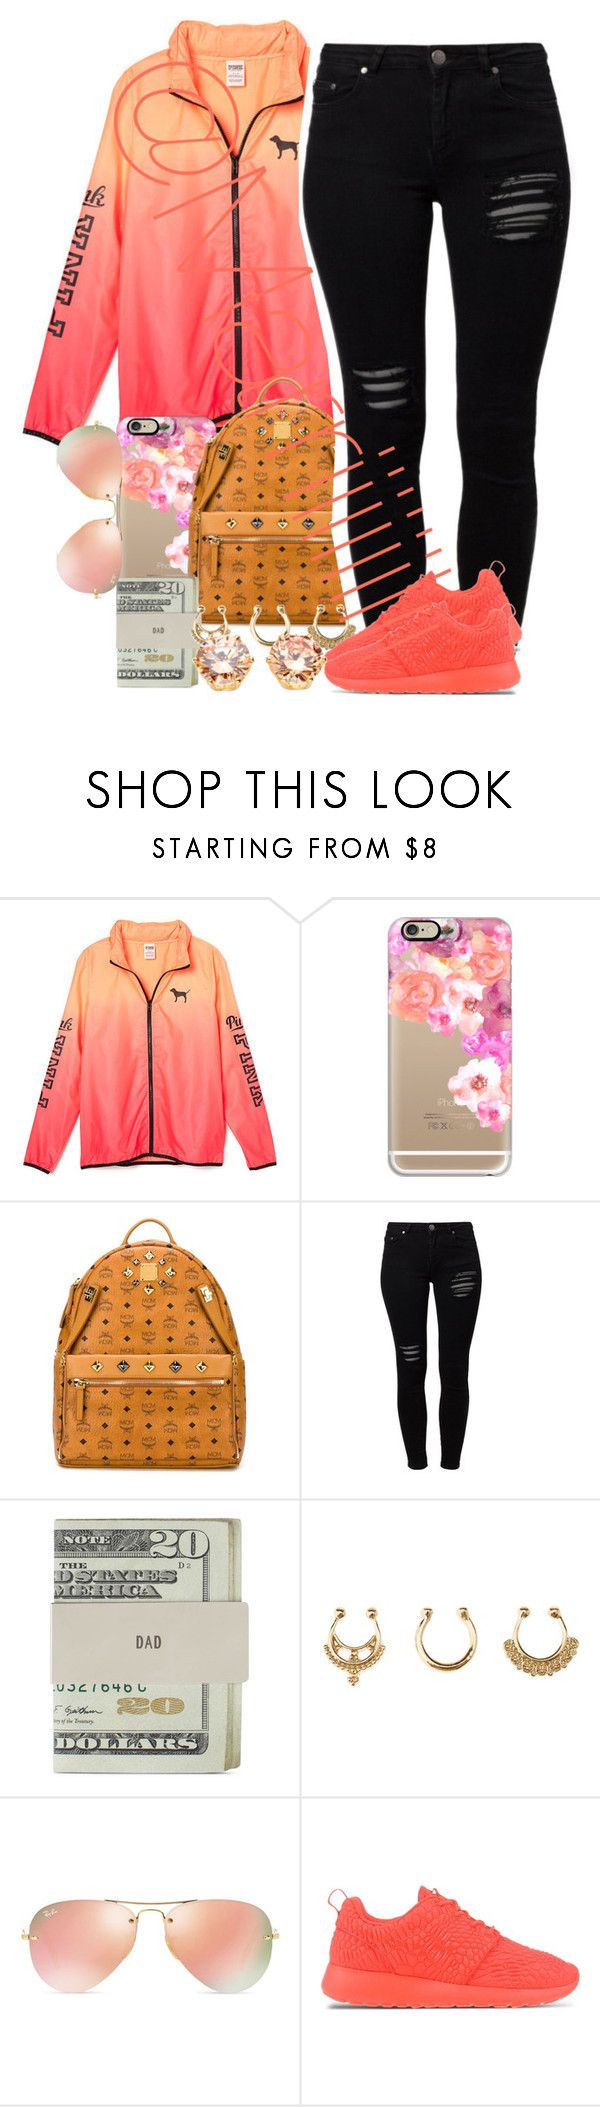 """""""Coral"""" by marriiiiiiiii ❤ liked on Polyvore featuring Casetify, MCM, Gestuz, Jack Spade, Charlotte Russe, Ray-Ban and NIKE"""